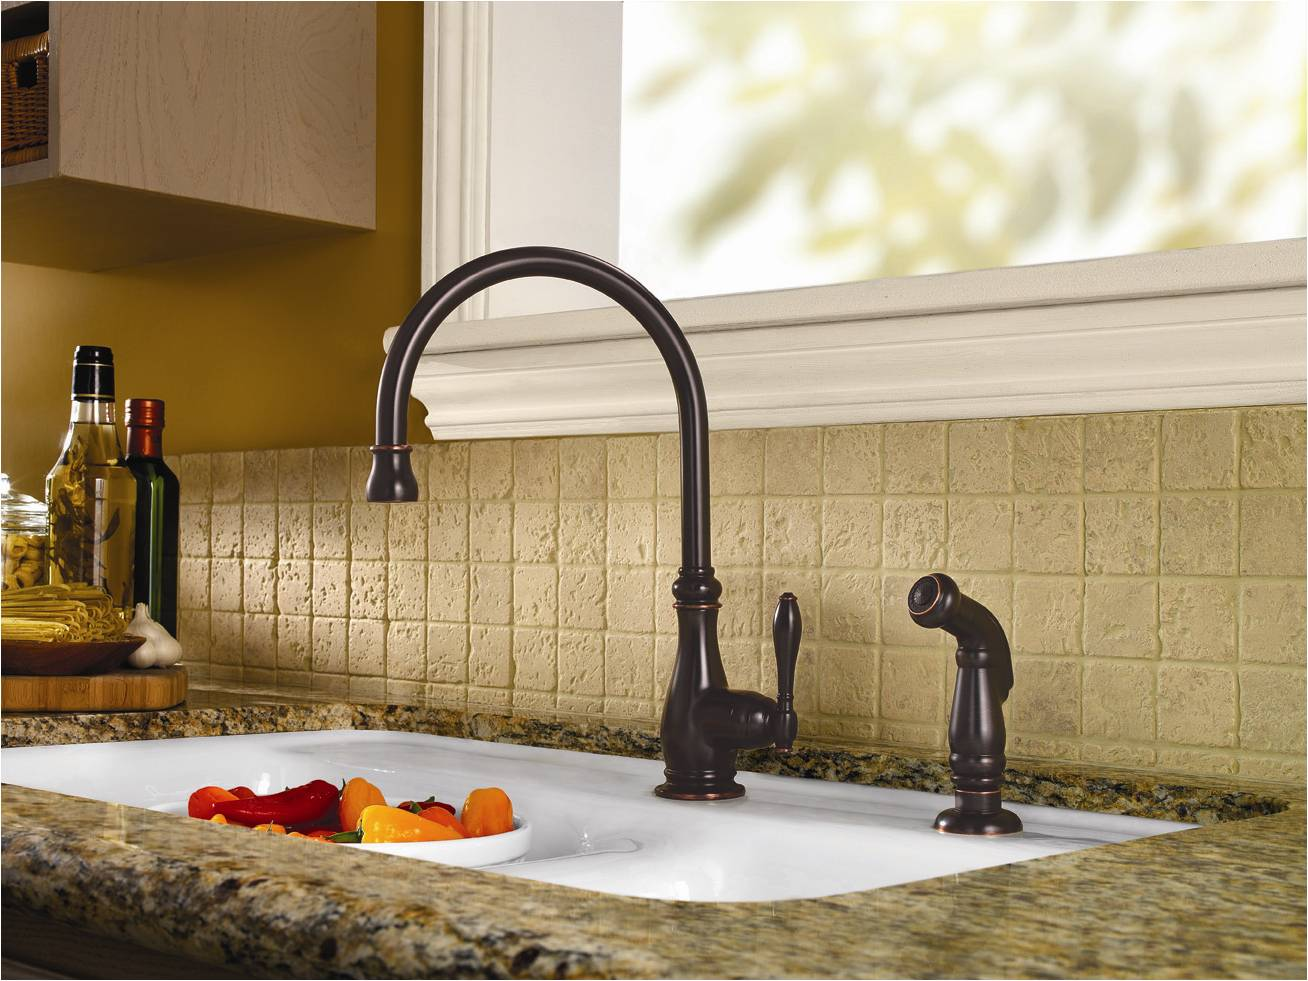 prweb price pfister kitchen faucets The Alina Kitchen Faucet s traditional style features a spout height of 14 inches with 8 5 inches of spout clearance for larger pots and bowls